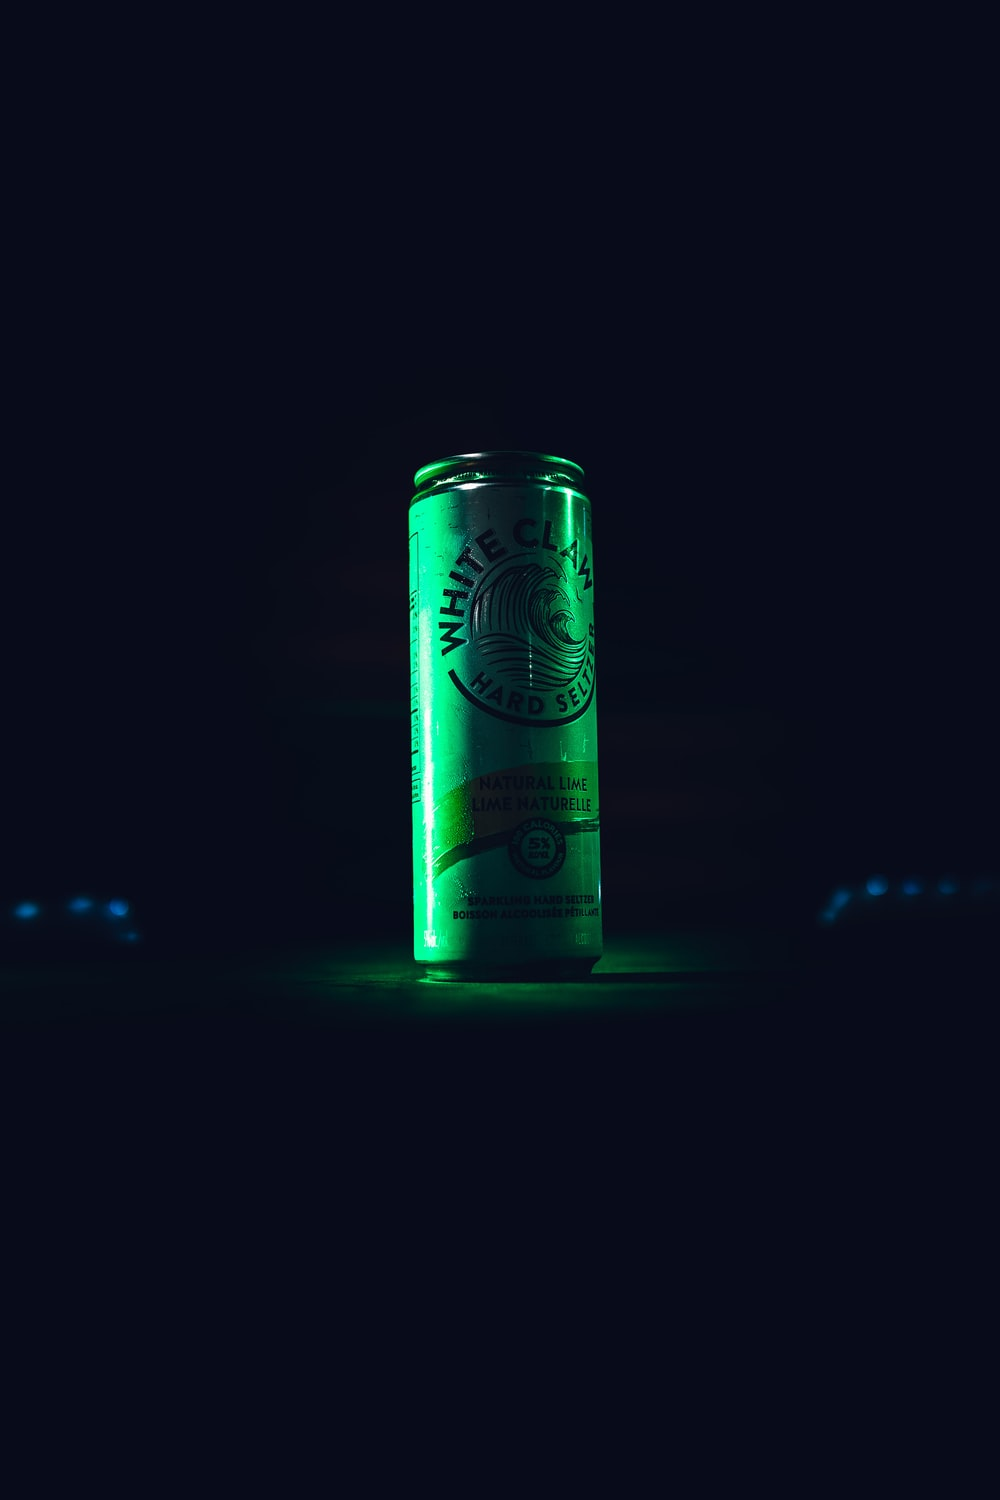 green and white can on black surface